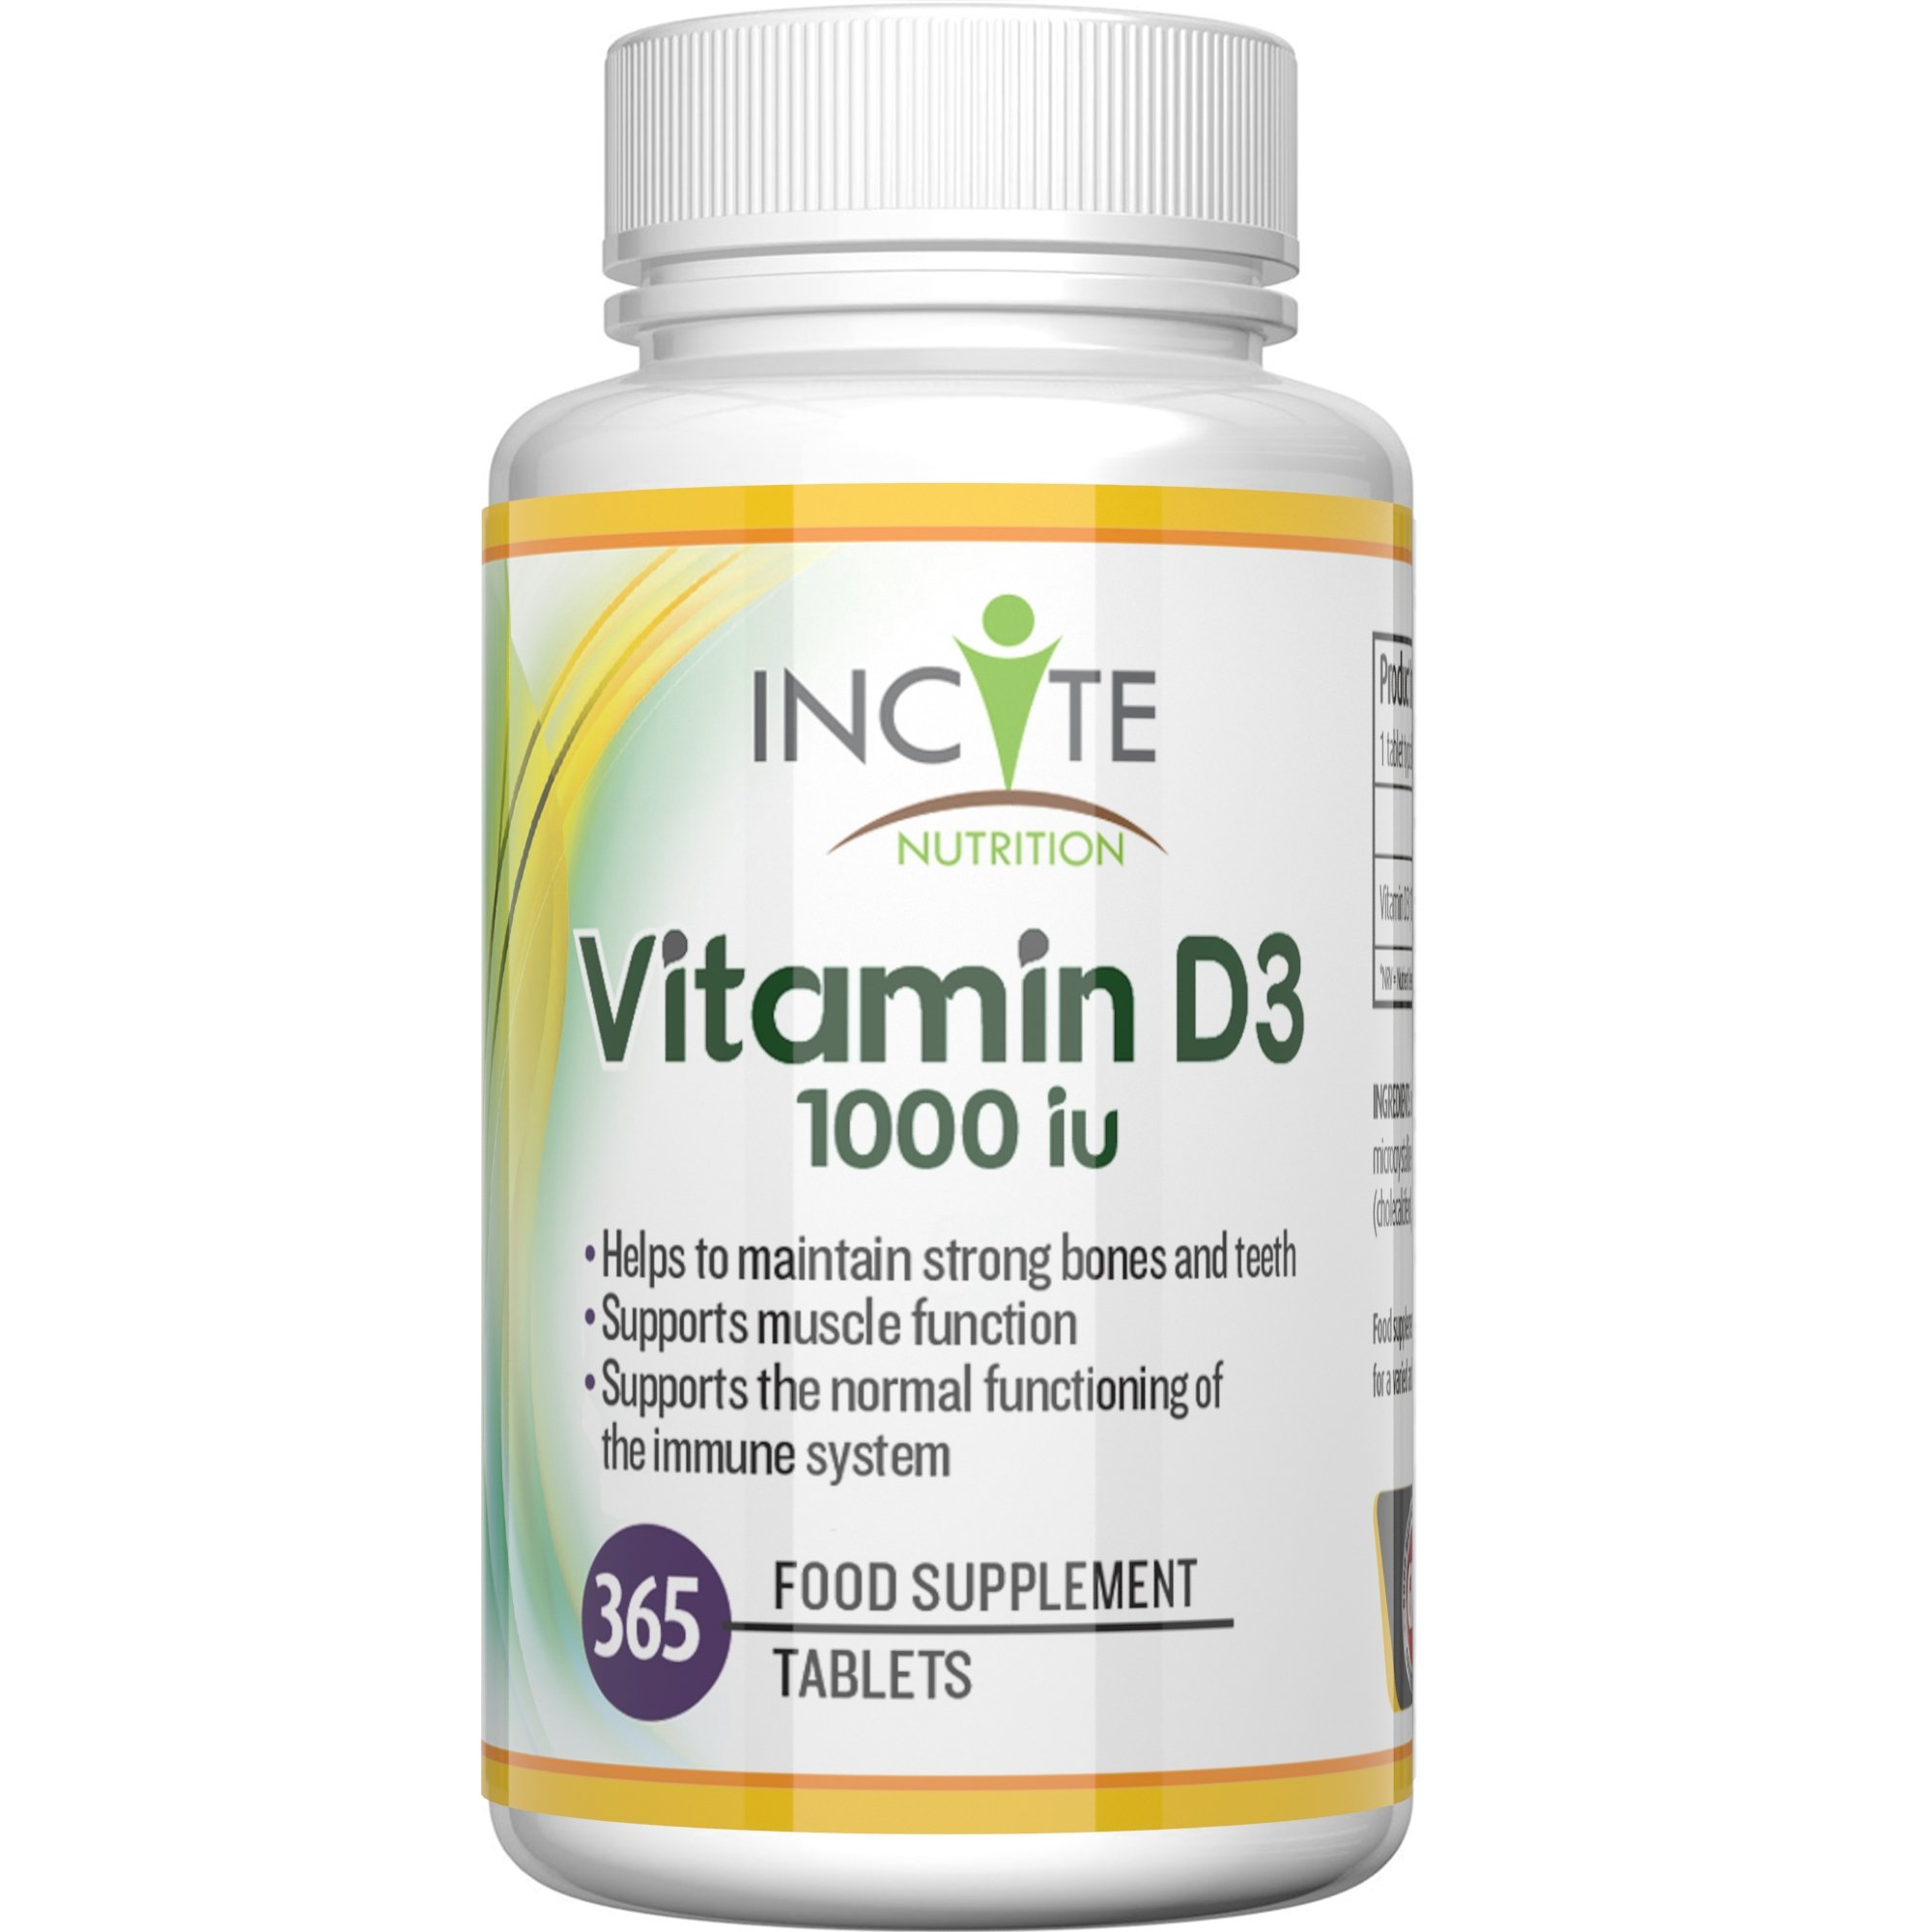 Vitamin D 3 365 Micro Tablets (1 Years Supply) 1000IU Vitamin D3 Supplement, High Absorption Cholecalciferol VIT D 3 | Vitamin D3 Mini Tablets Easier to Swallow Than Vitamin D Softgels product image